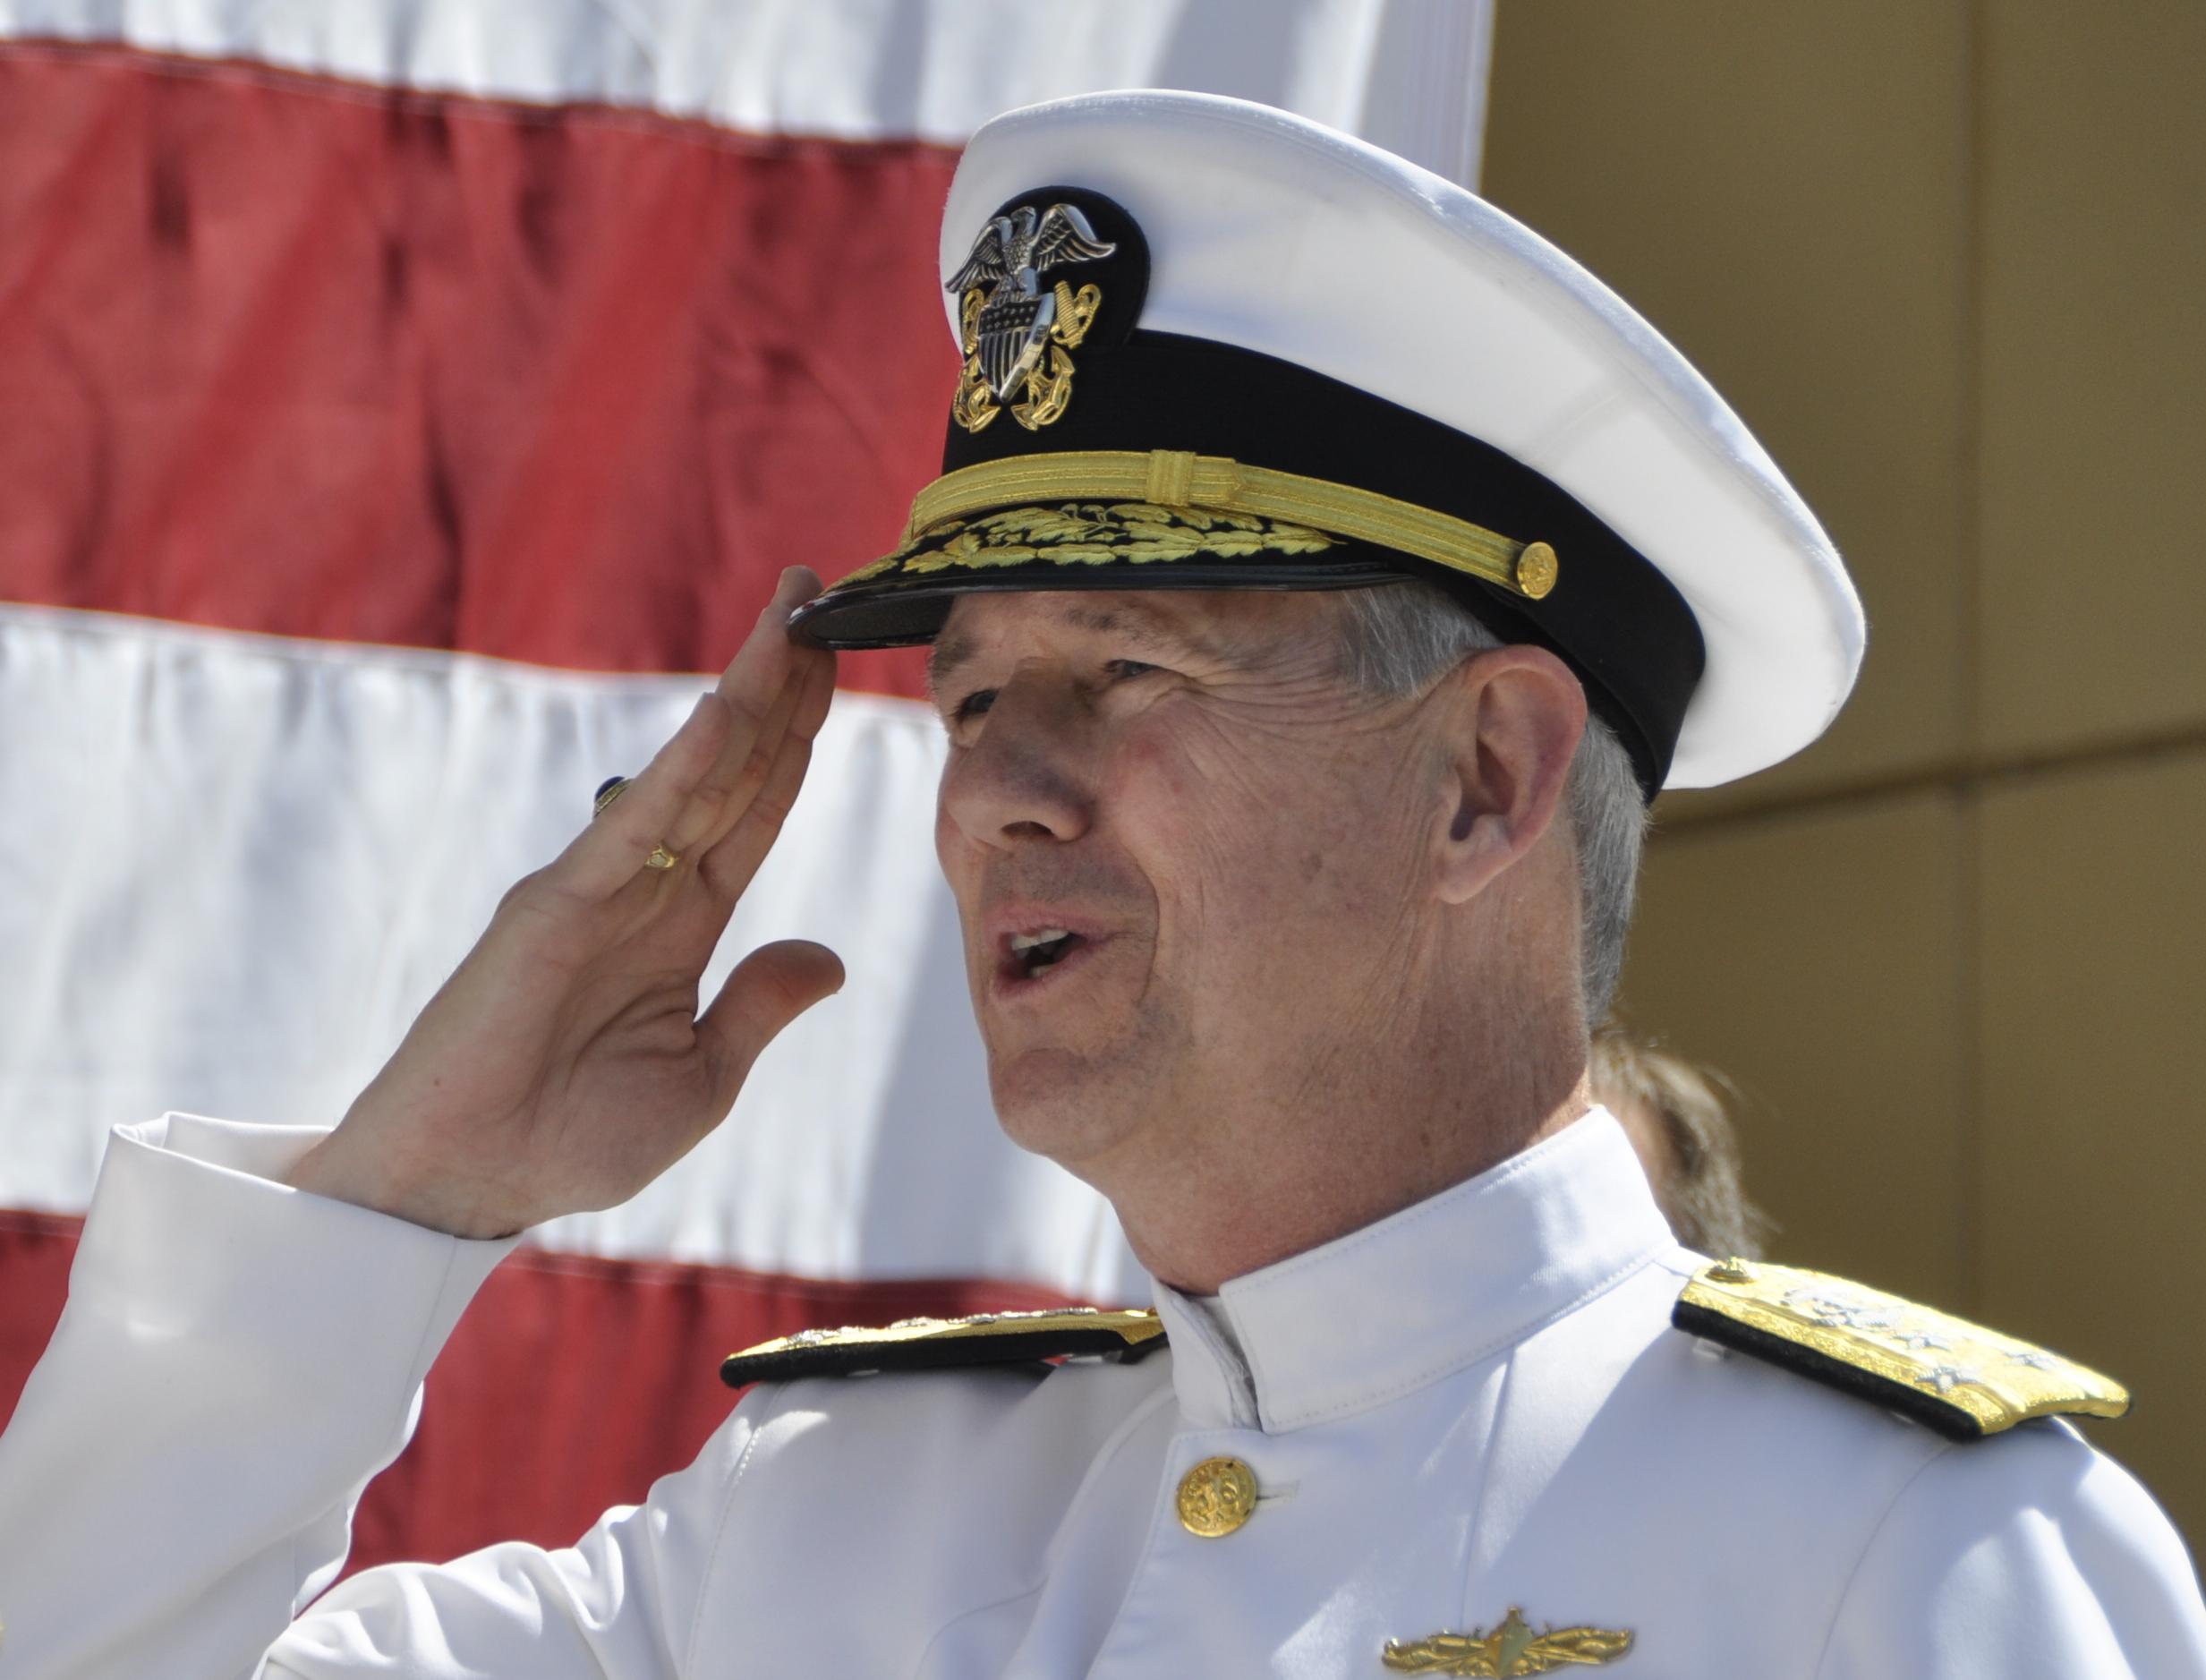 Vice Adm. Thomas Moore relieves Vice Adm. William Hilarides as commander, Naval Sea Systems Command (NAVSEA) on June 10, 2016. US Navy Photo